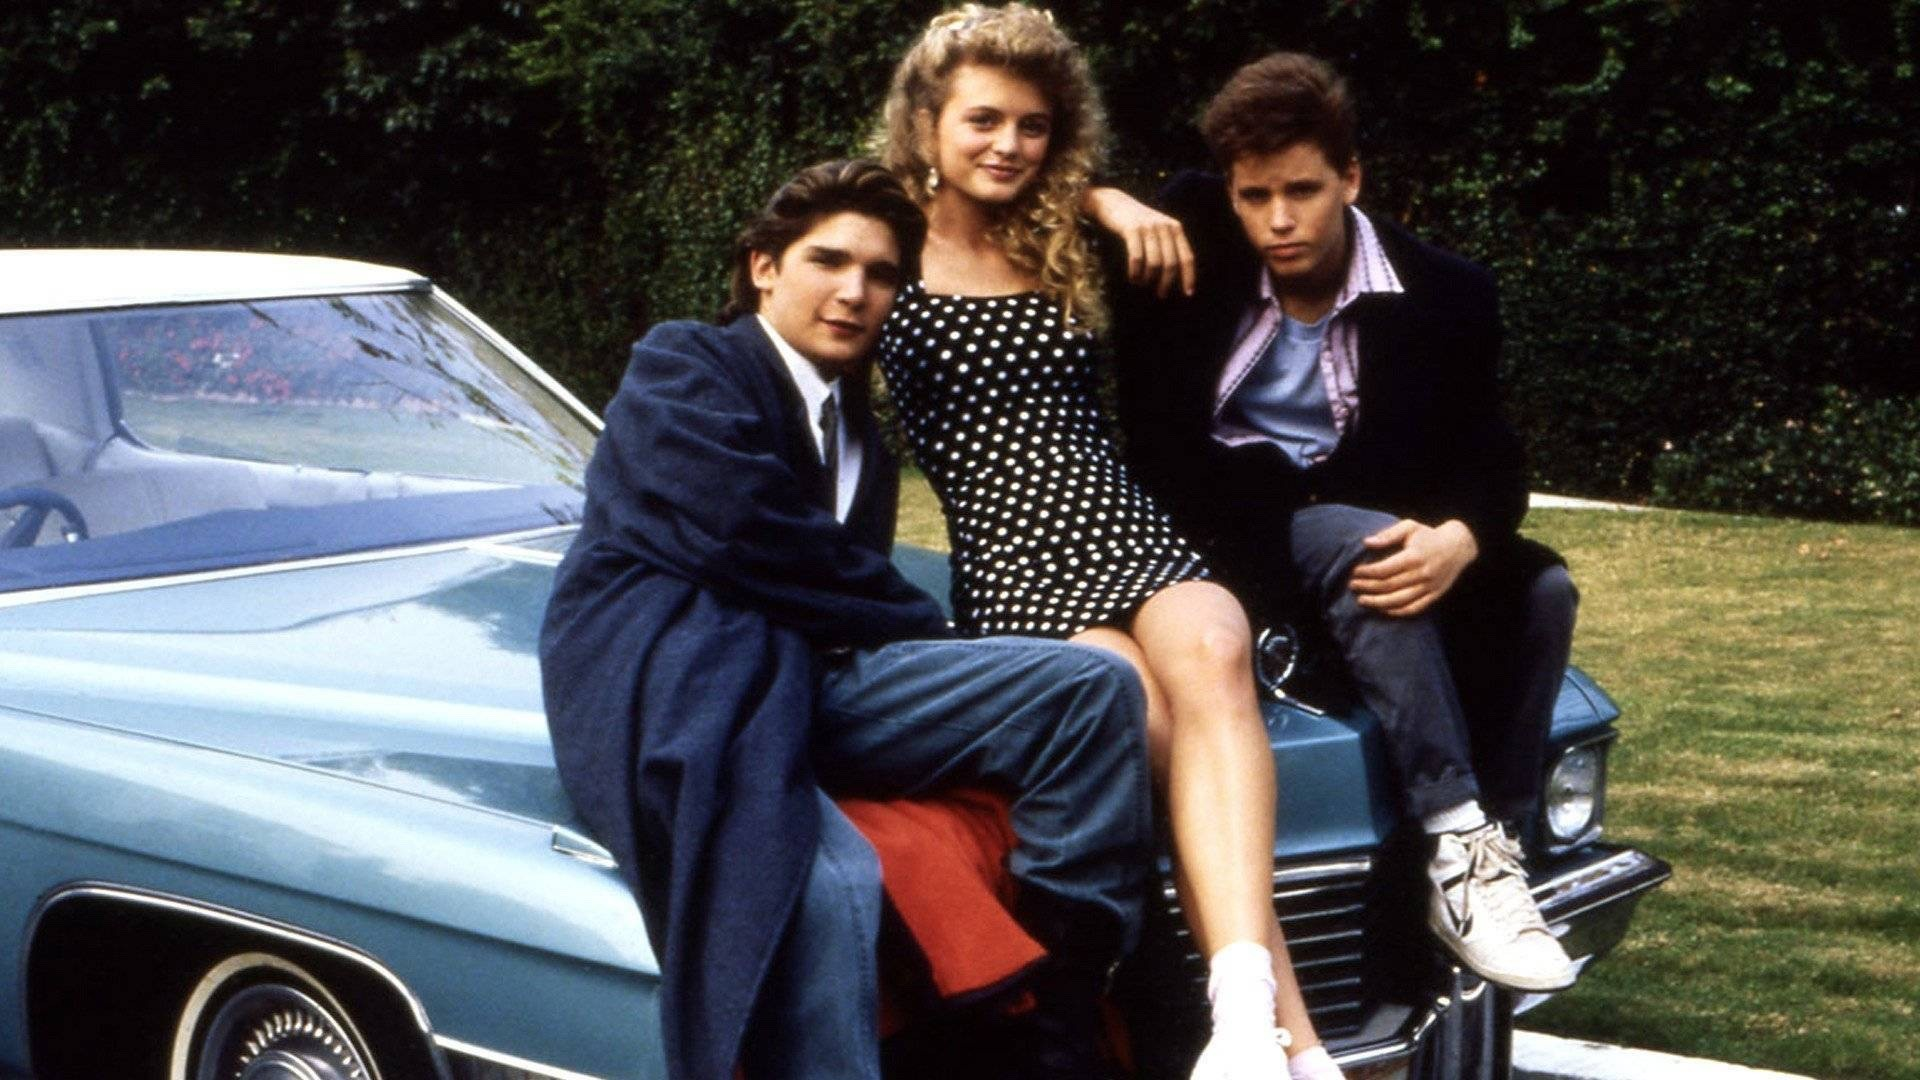 Res: 1920x1080, The classic 1988 film License to Drive with Corey Haim and Cory Feldman is  the latest film from the 80s that will be going through the remake machine.